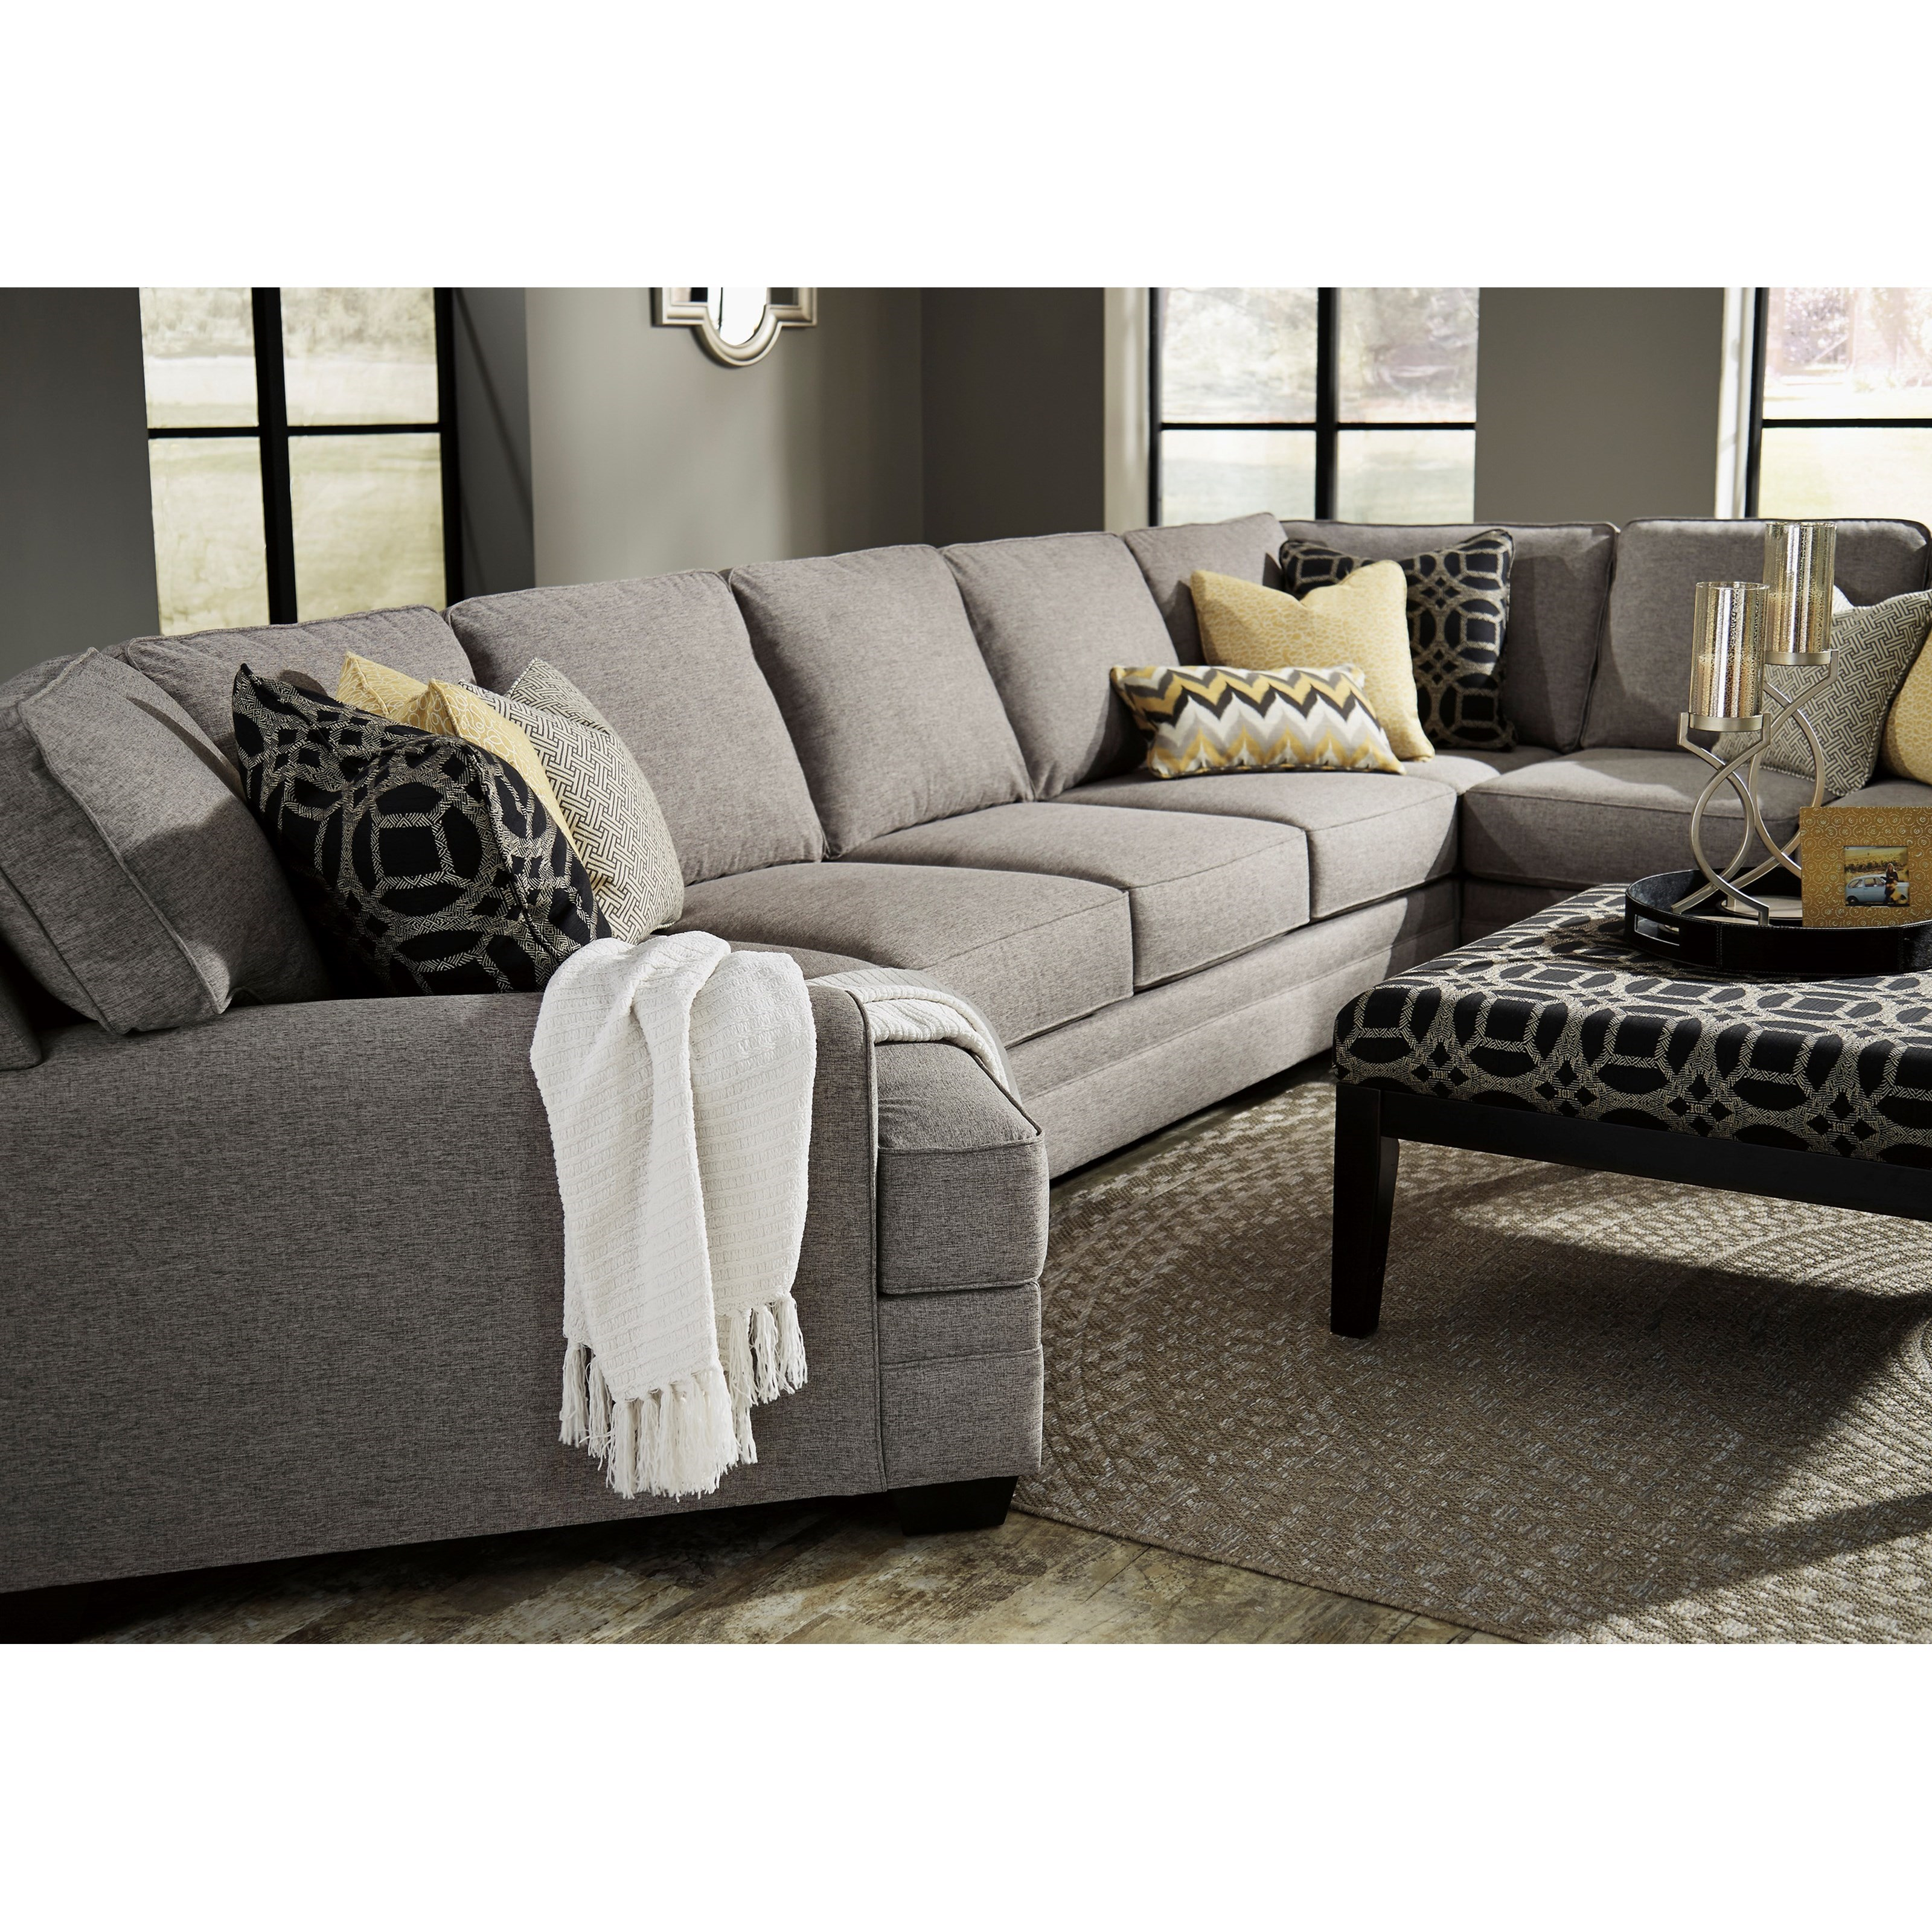 Benchcraft cresson contemporary 4 piece sectional w for 4 piece recliner sectional sofa